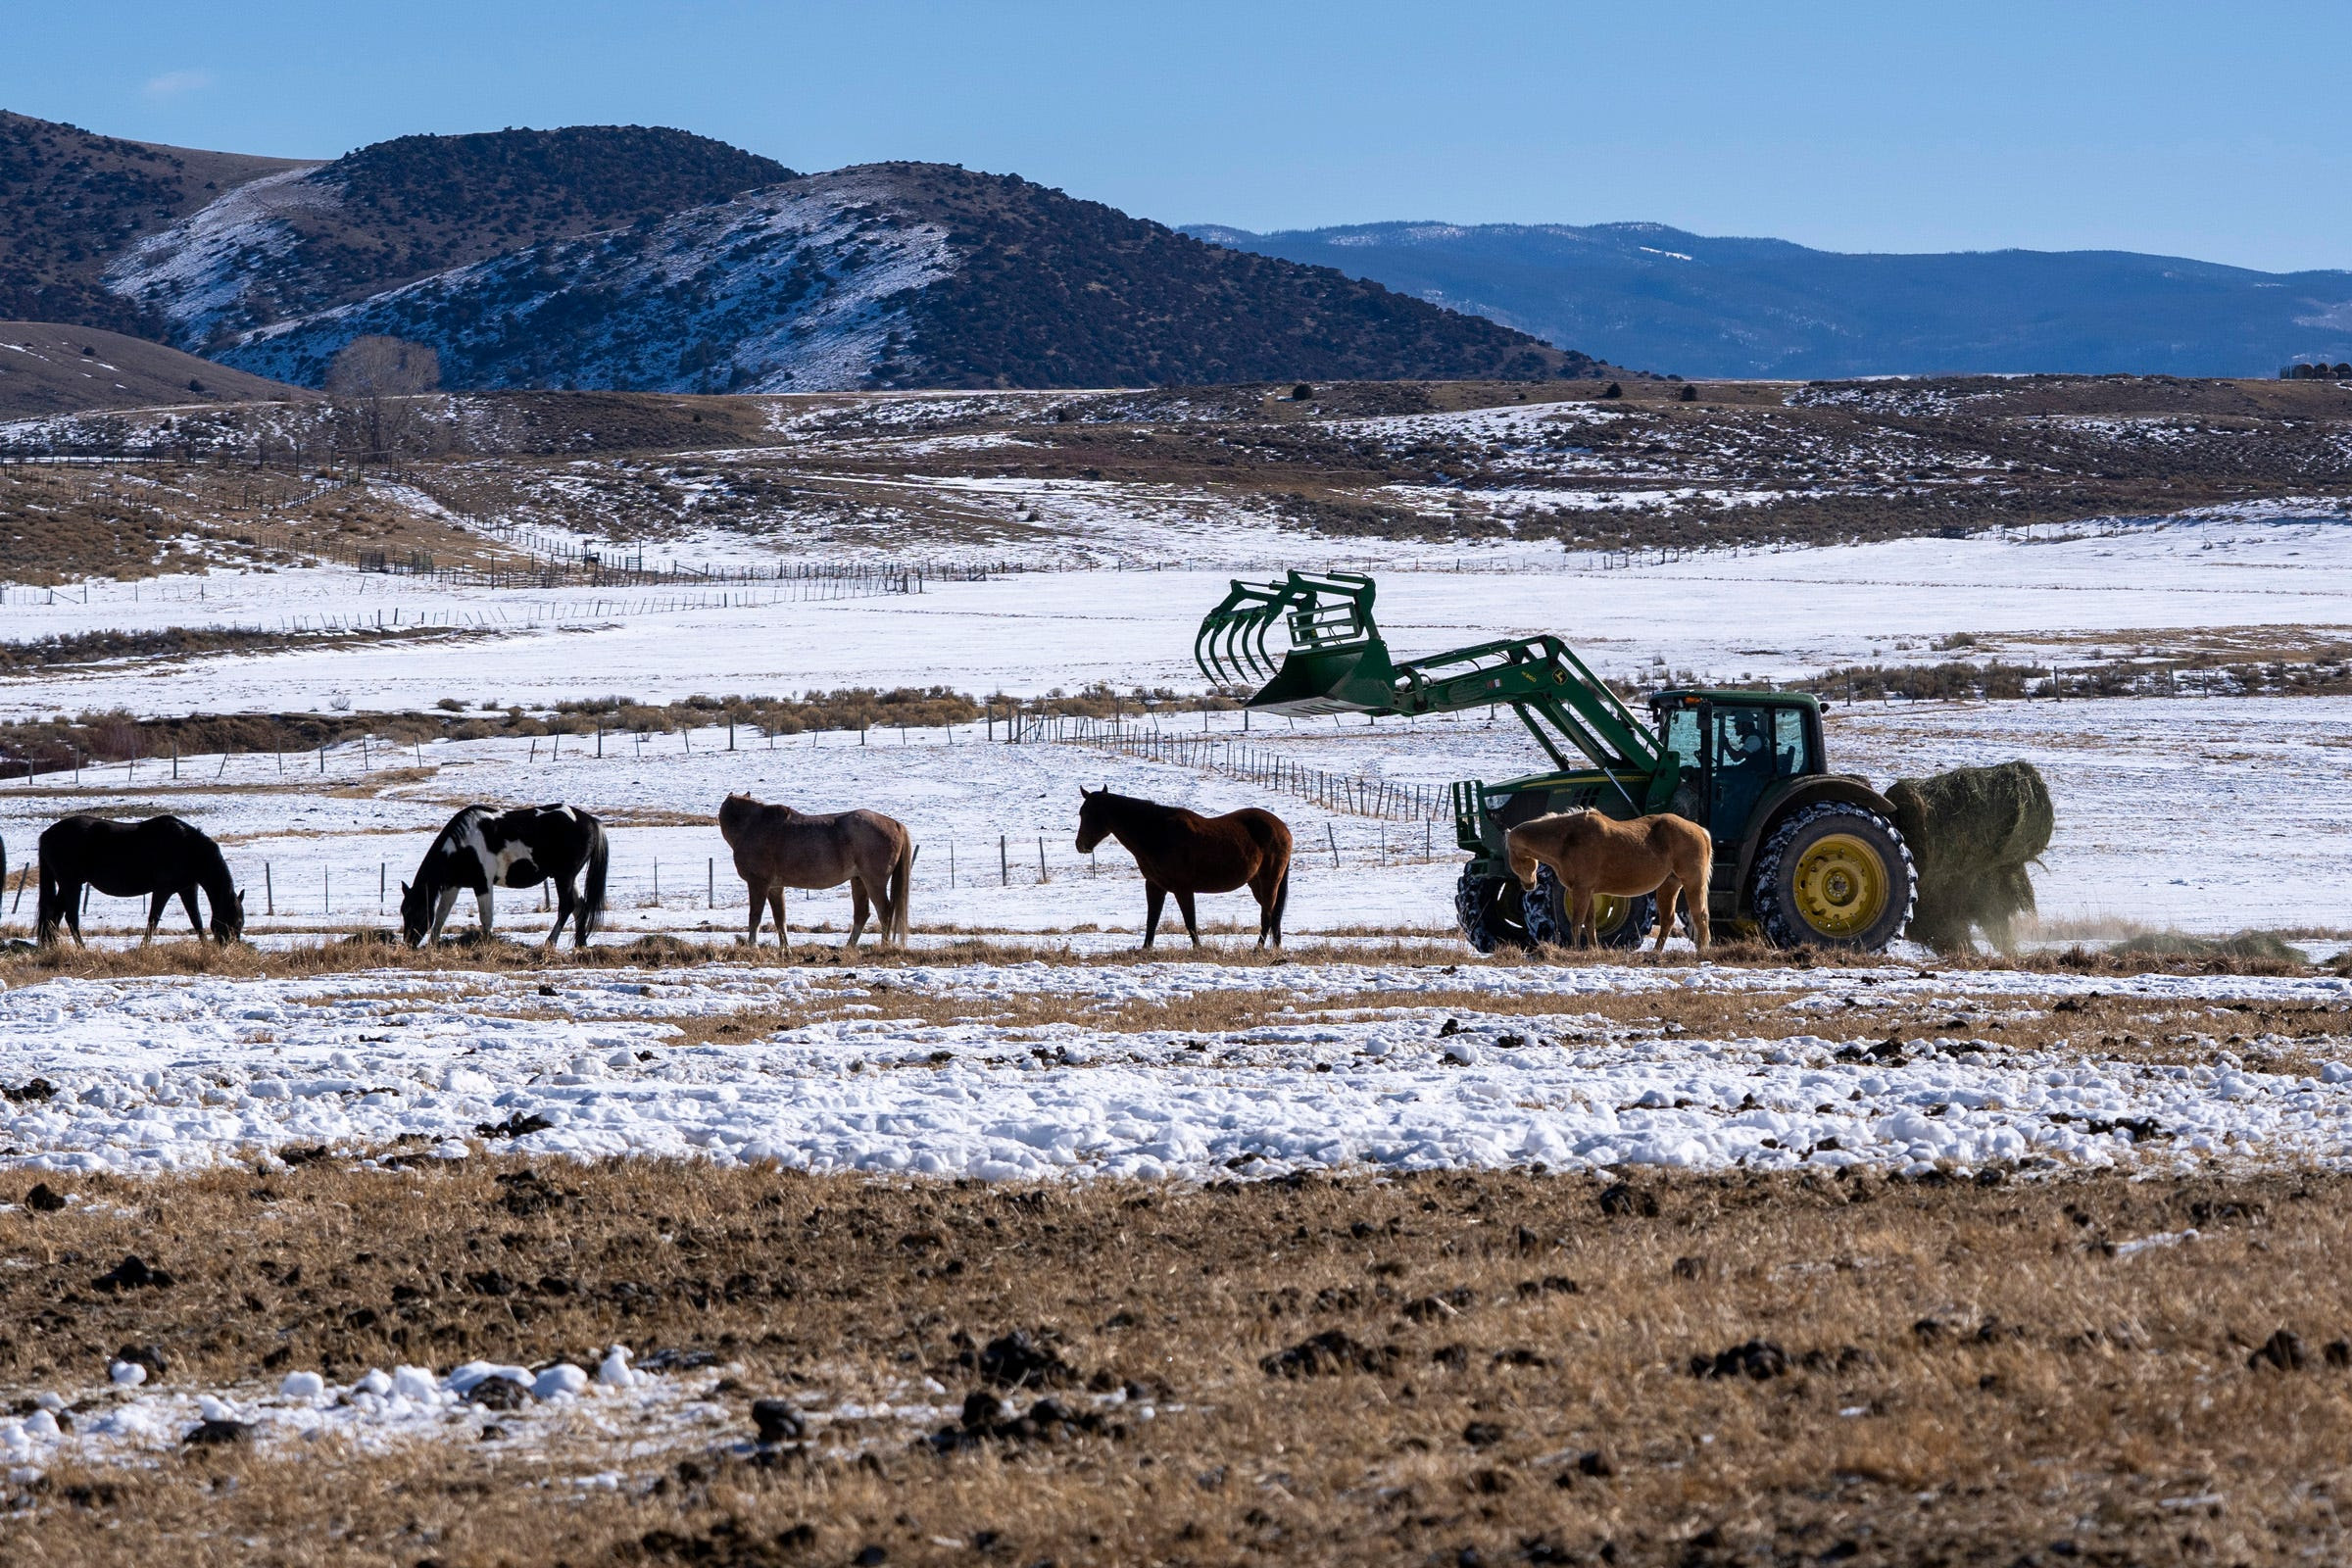 Paul Bruchez uses a tractor to take hay to horses, which he cares for under an agreement with another ranch near Kremmling, Colorado. In the background stand mountains where months earlier a fire had billowed smoke.